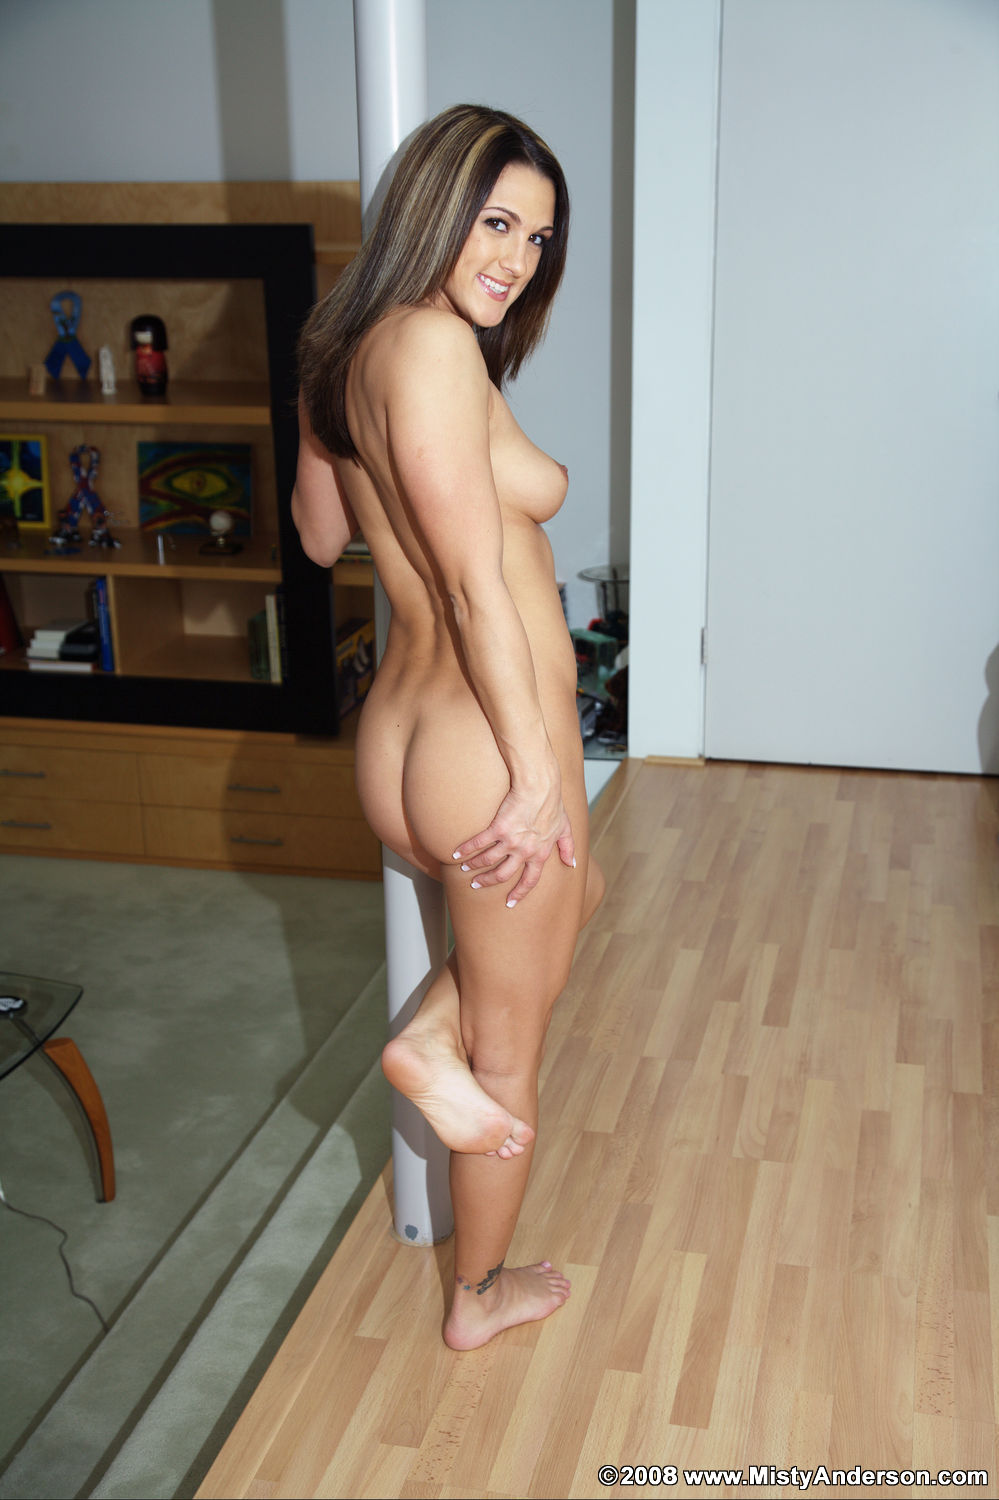 Get her pussy shave wife